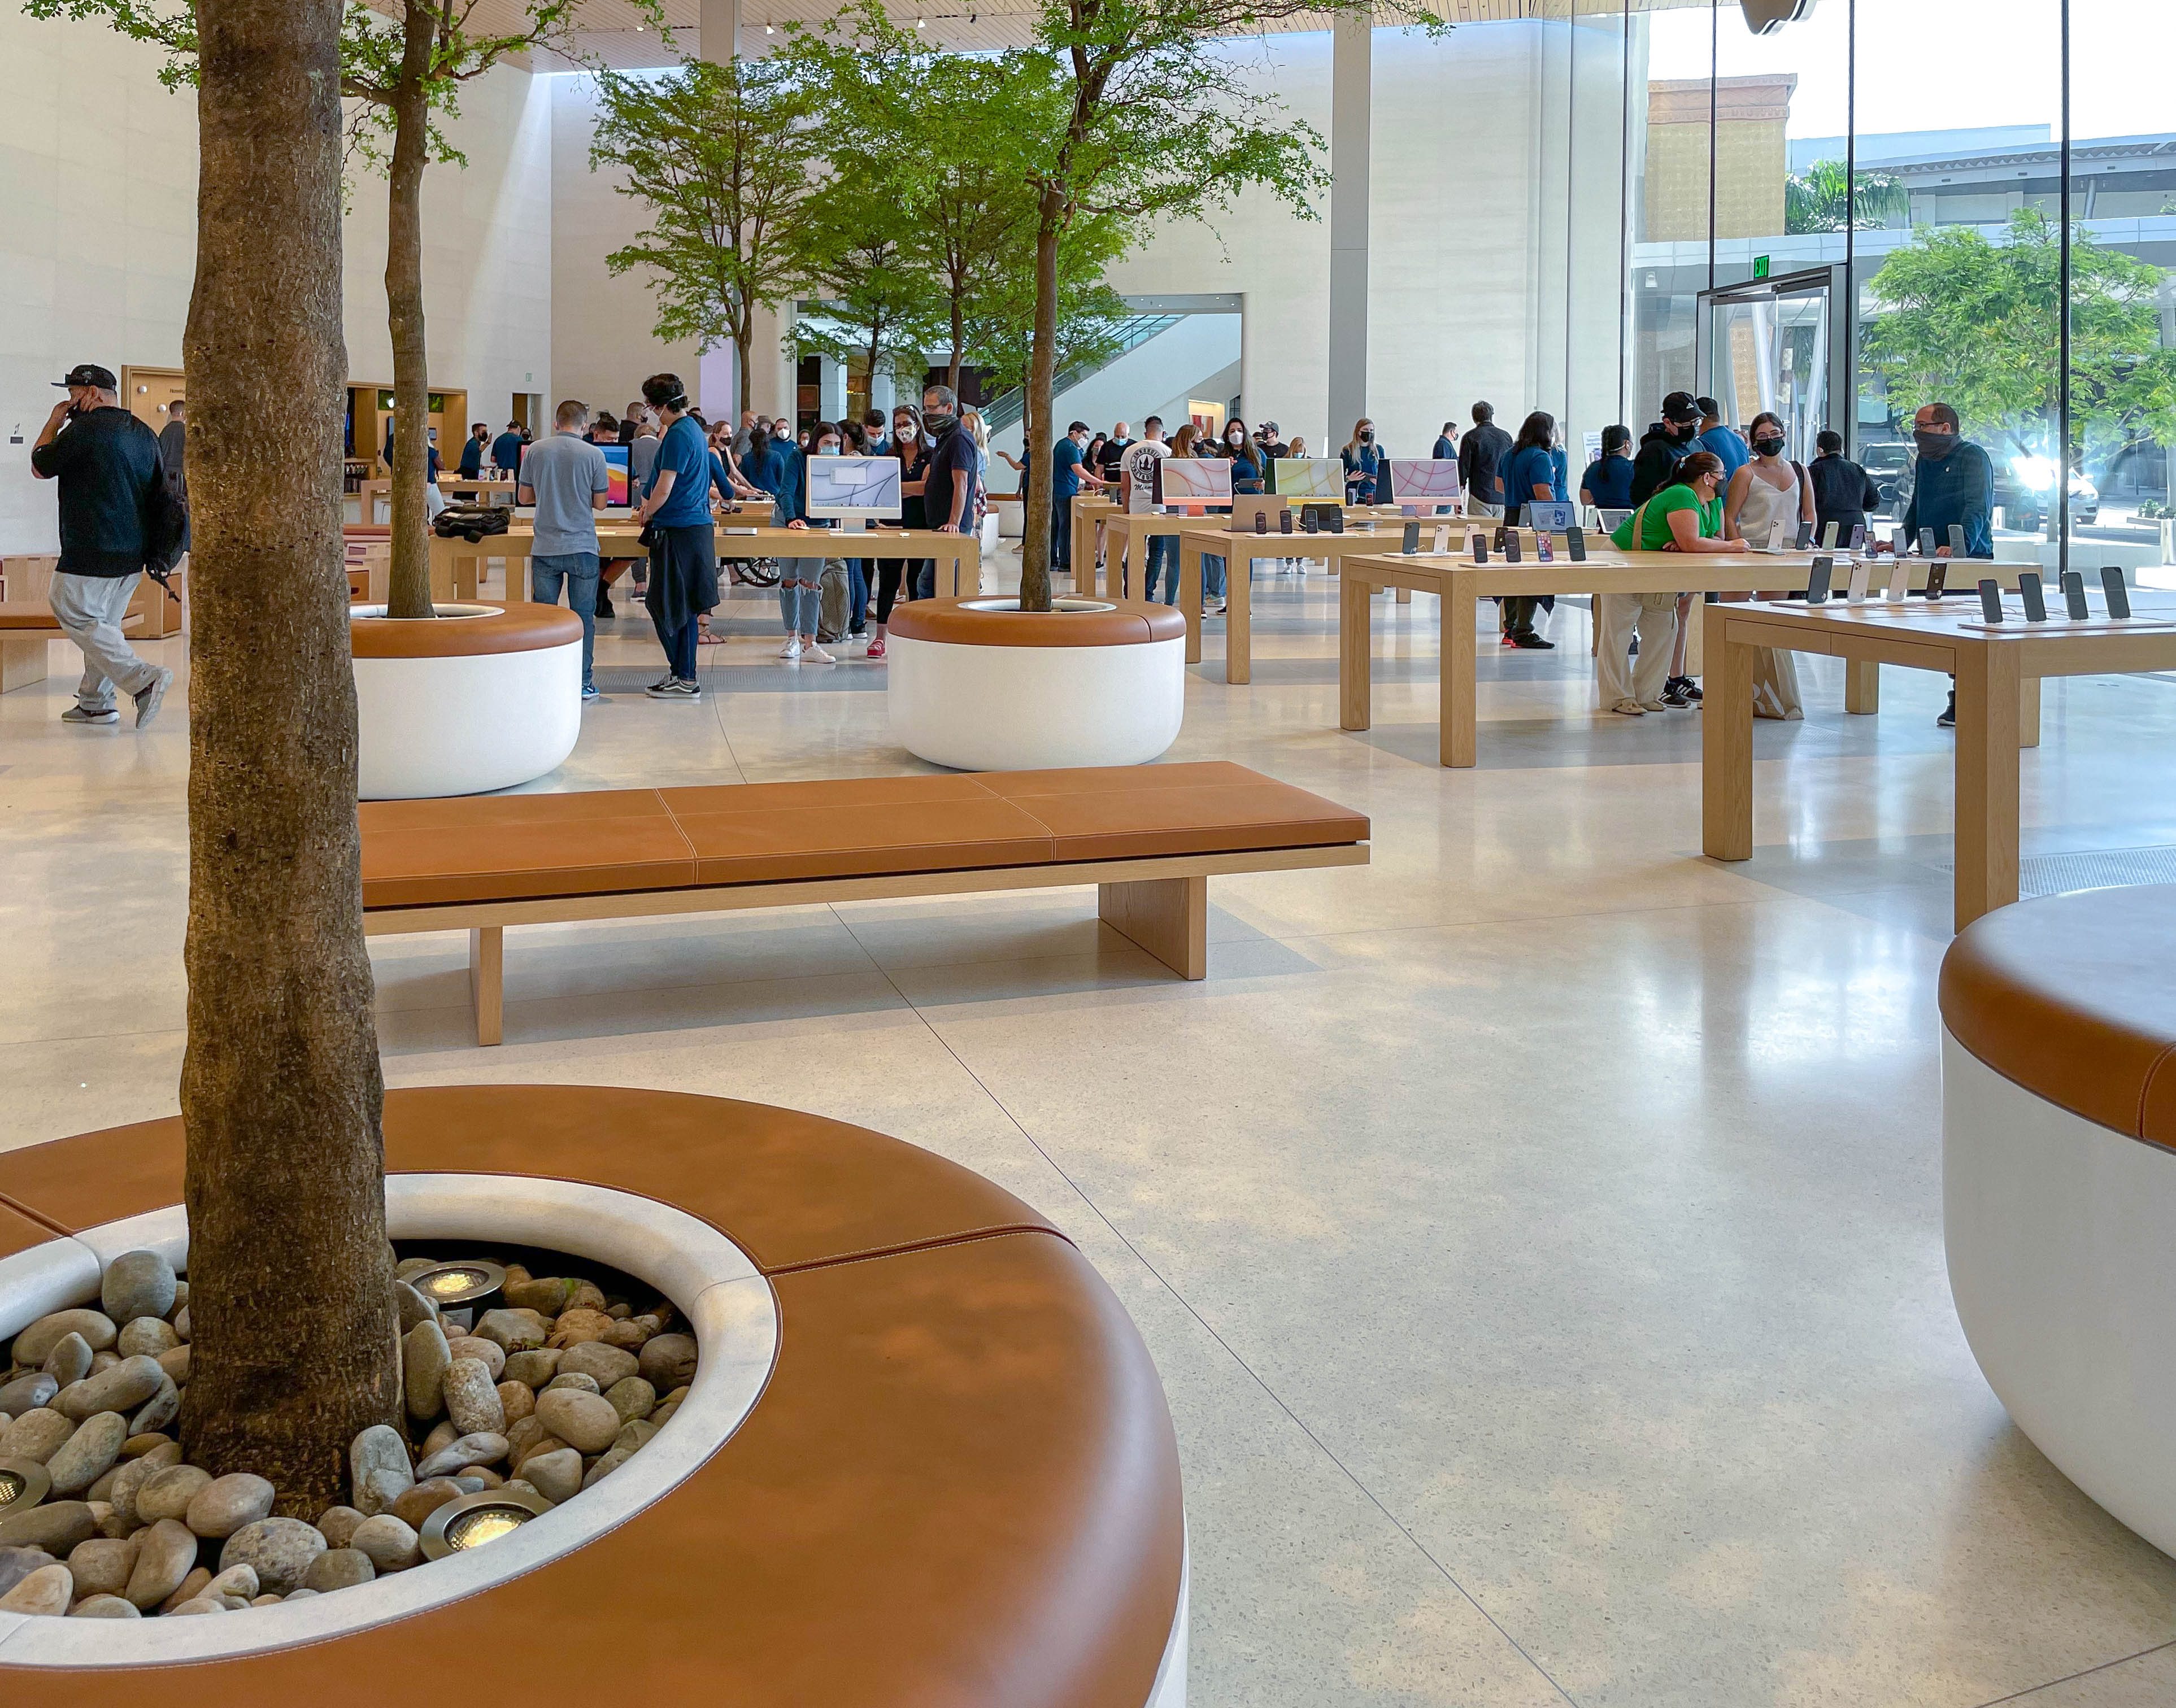 The grove at Apple Dadeland.